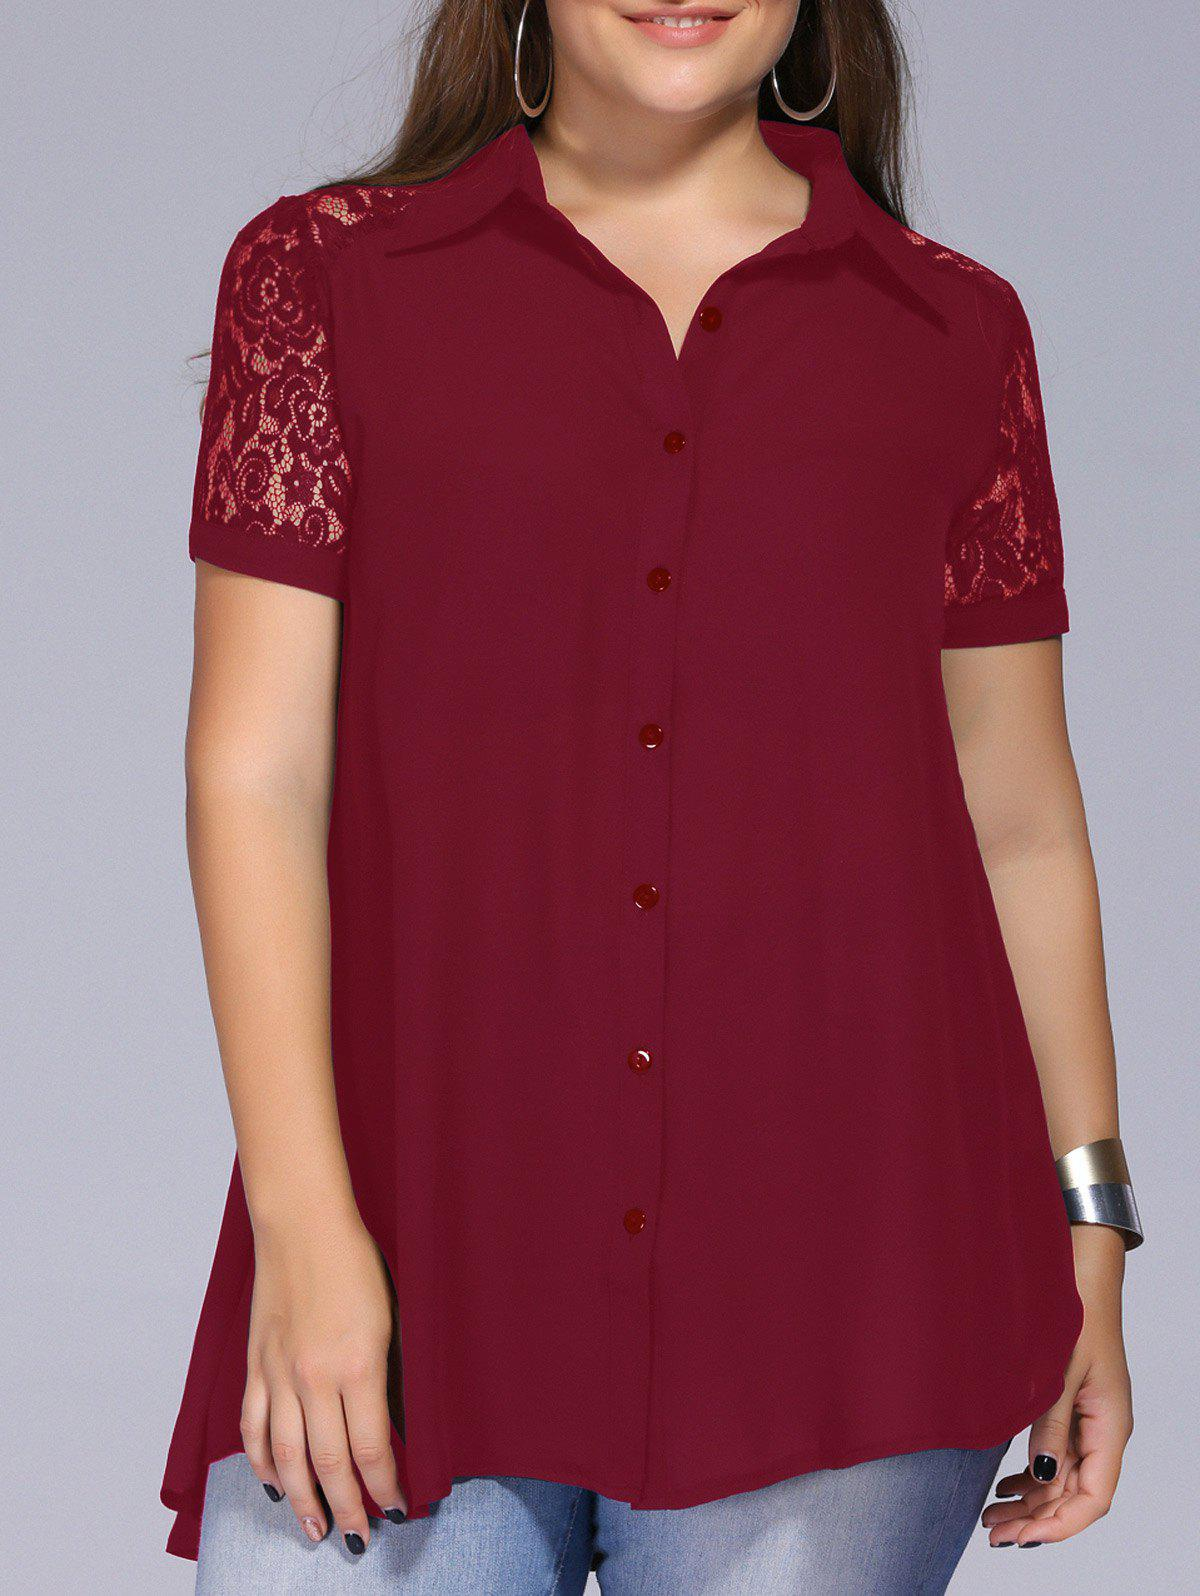 Lace Trim Plus Size Blouse - WINE RED 5XL